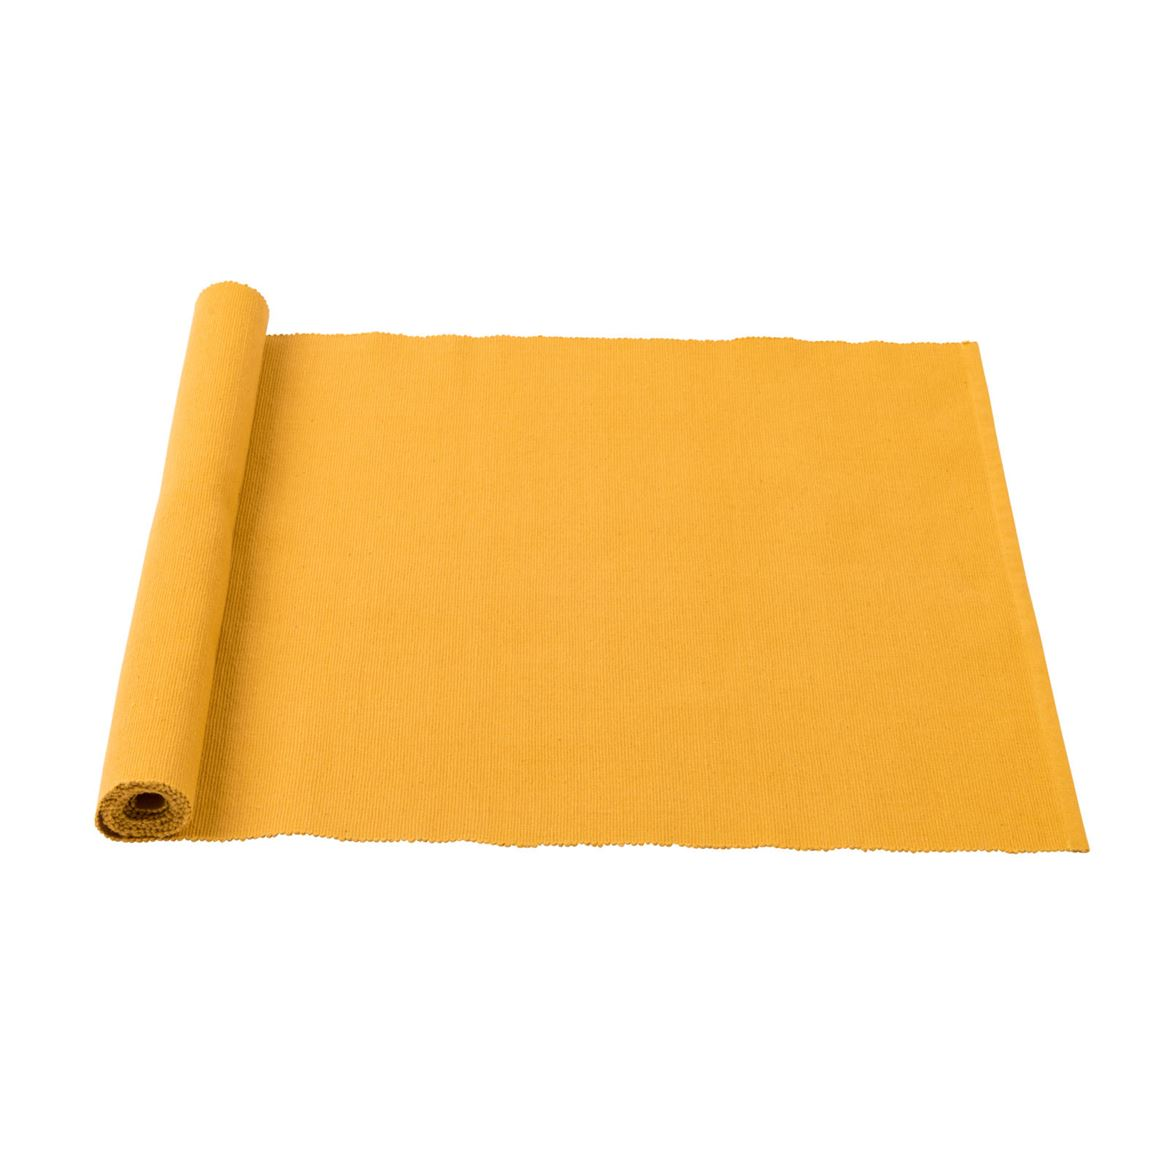 MINI RIB Runner giallo W 48 x L 140 cm_mini-rib-runner-giallo-w-48-x-l-140-cm